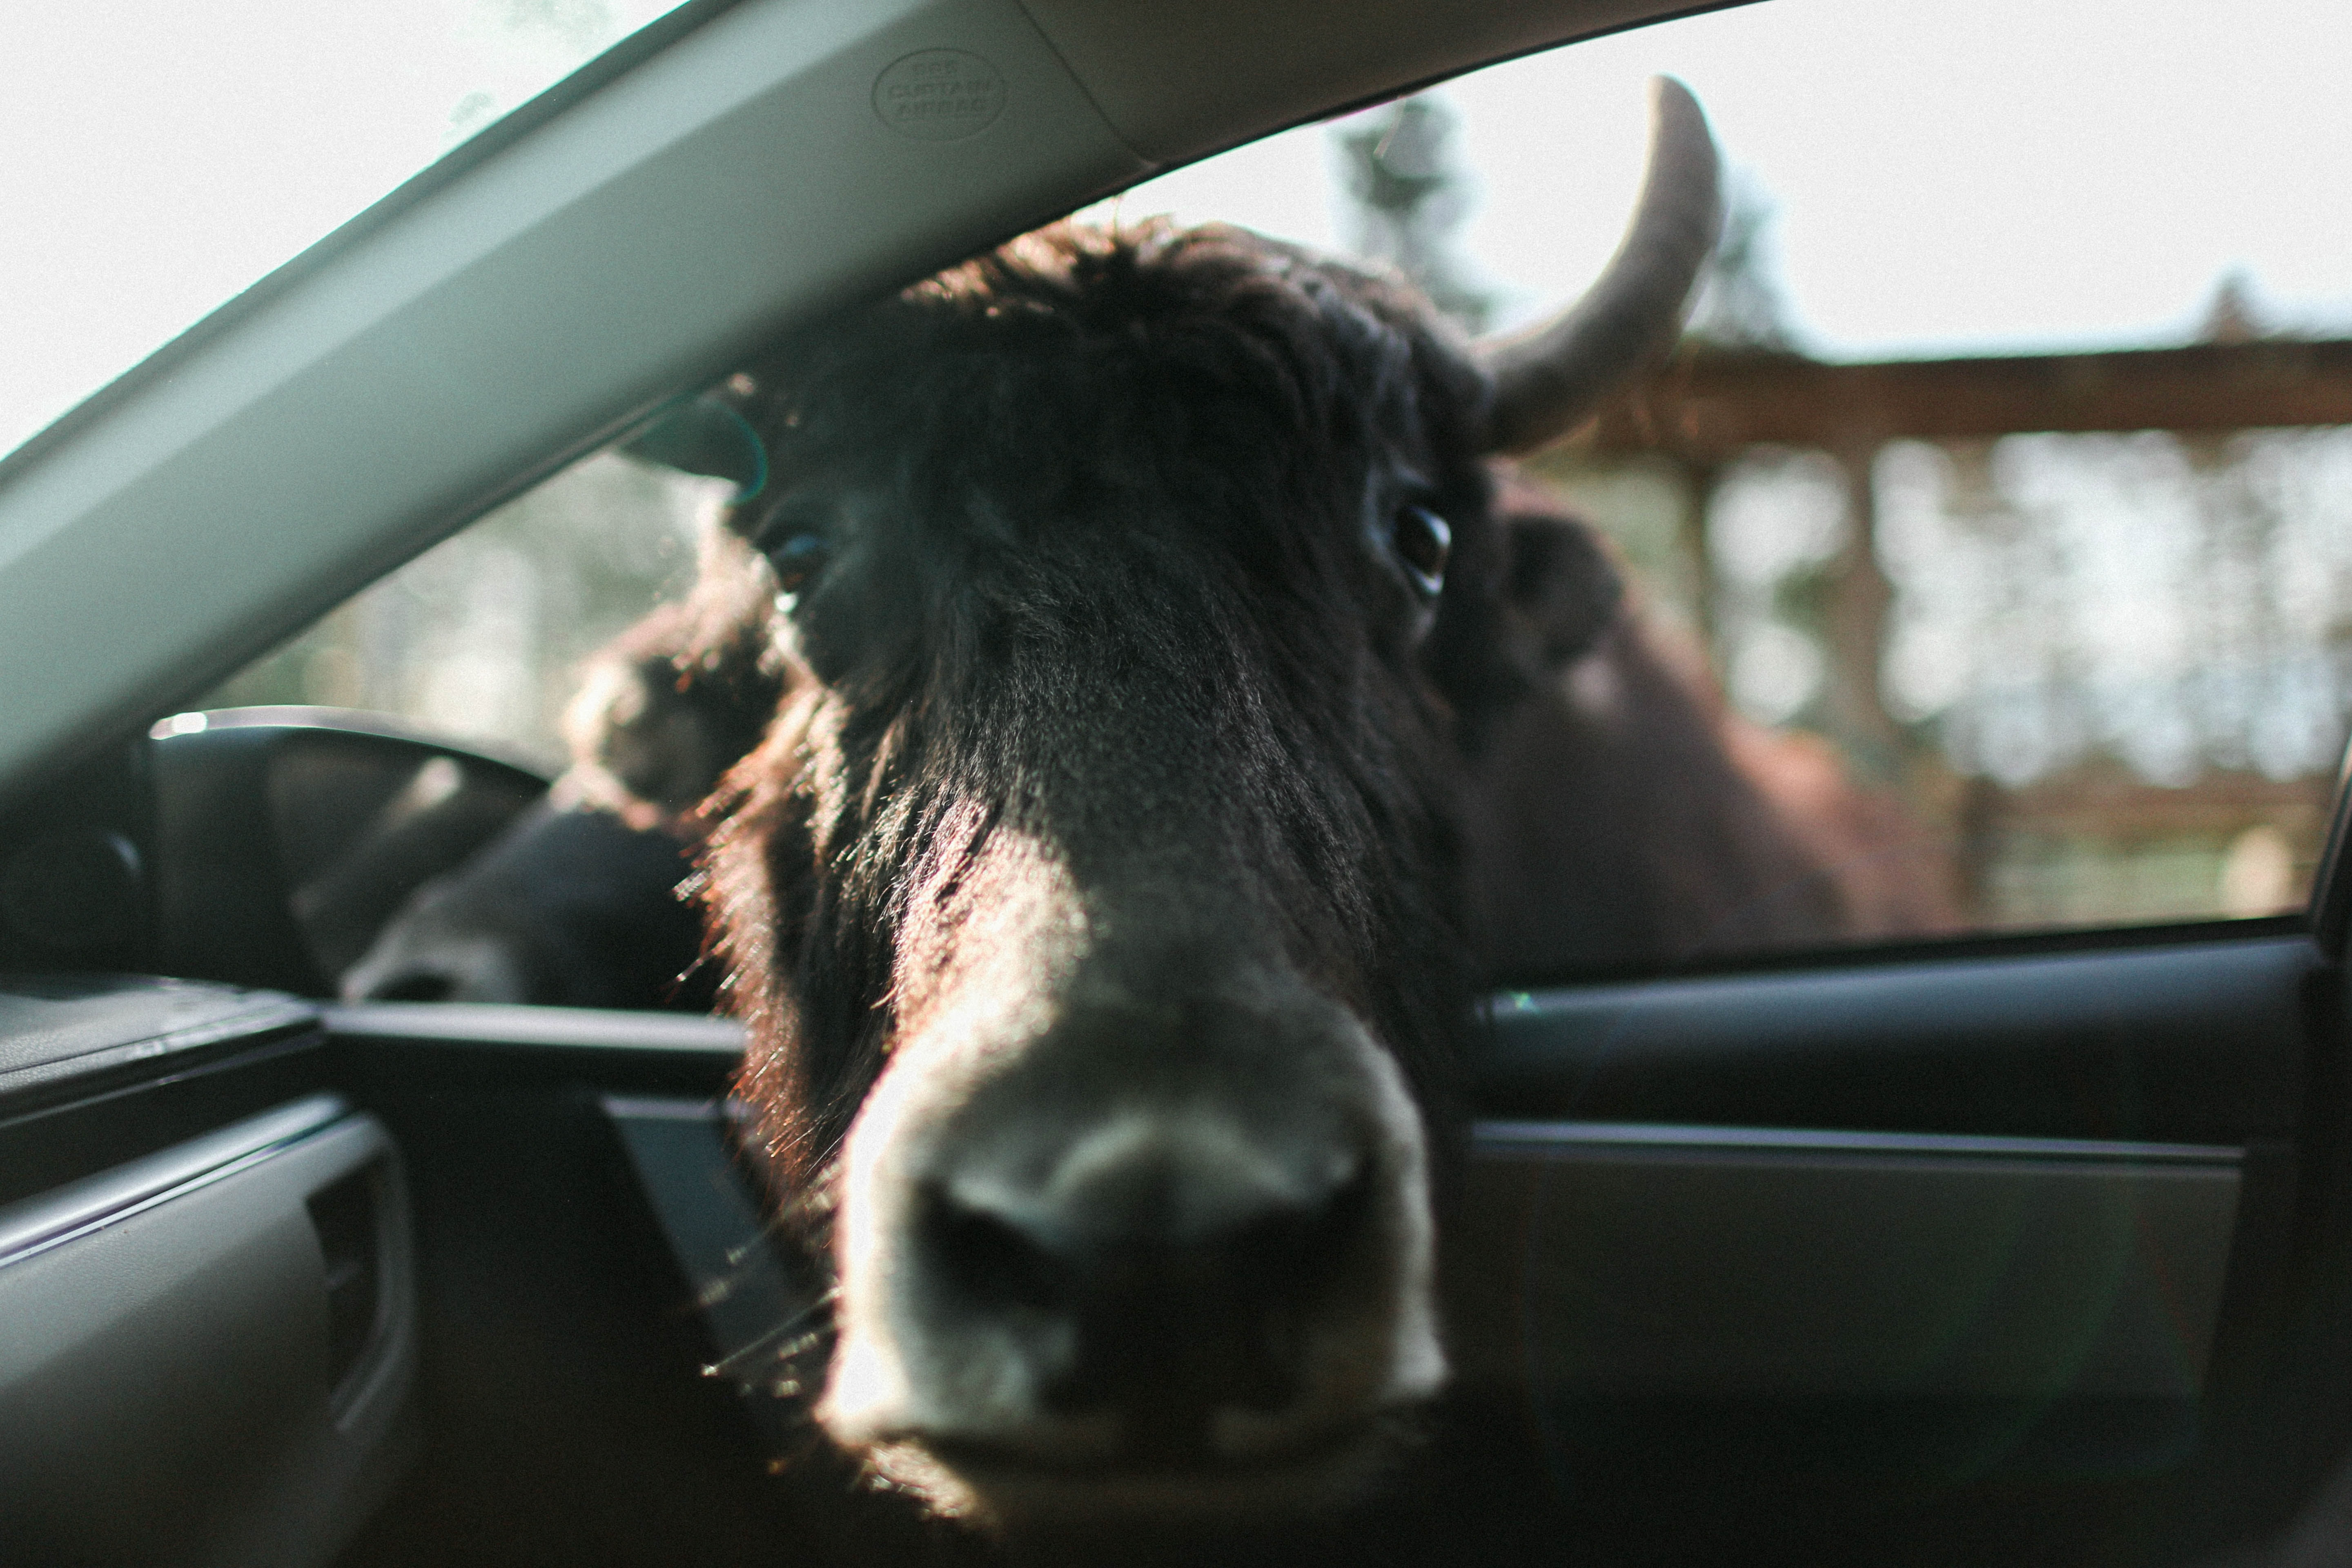 brown animal head inside car